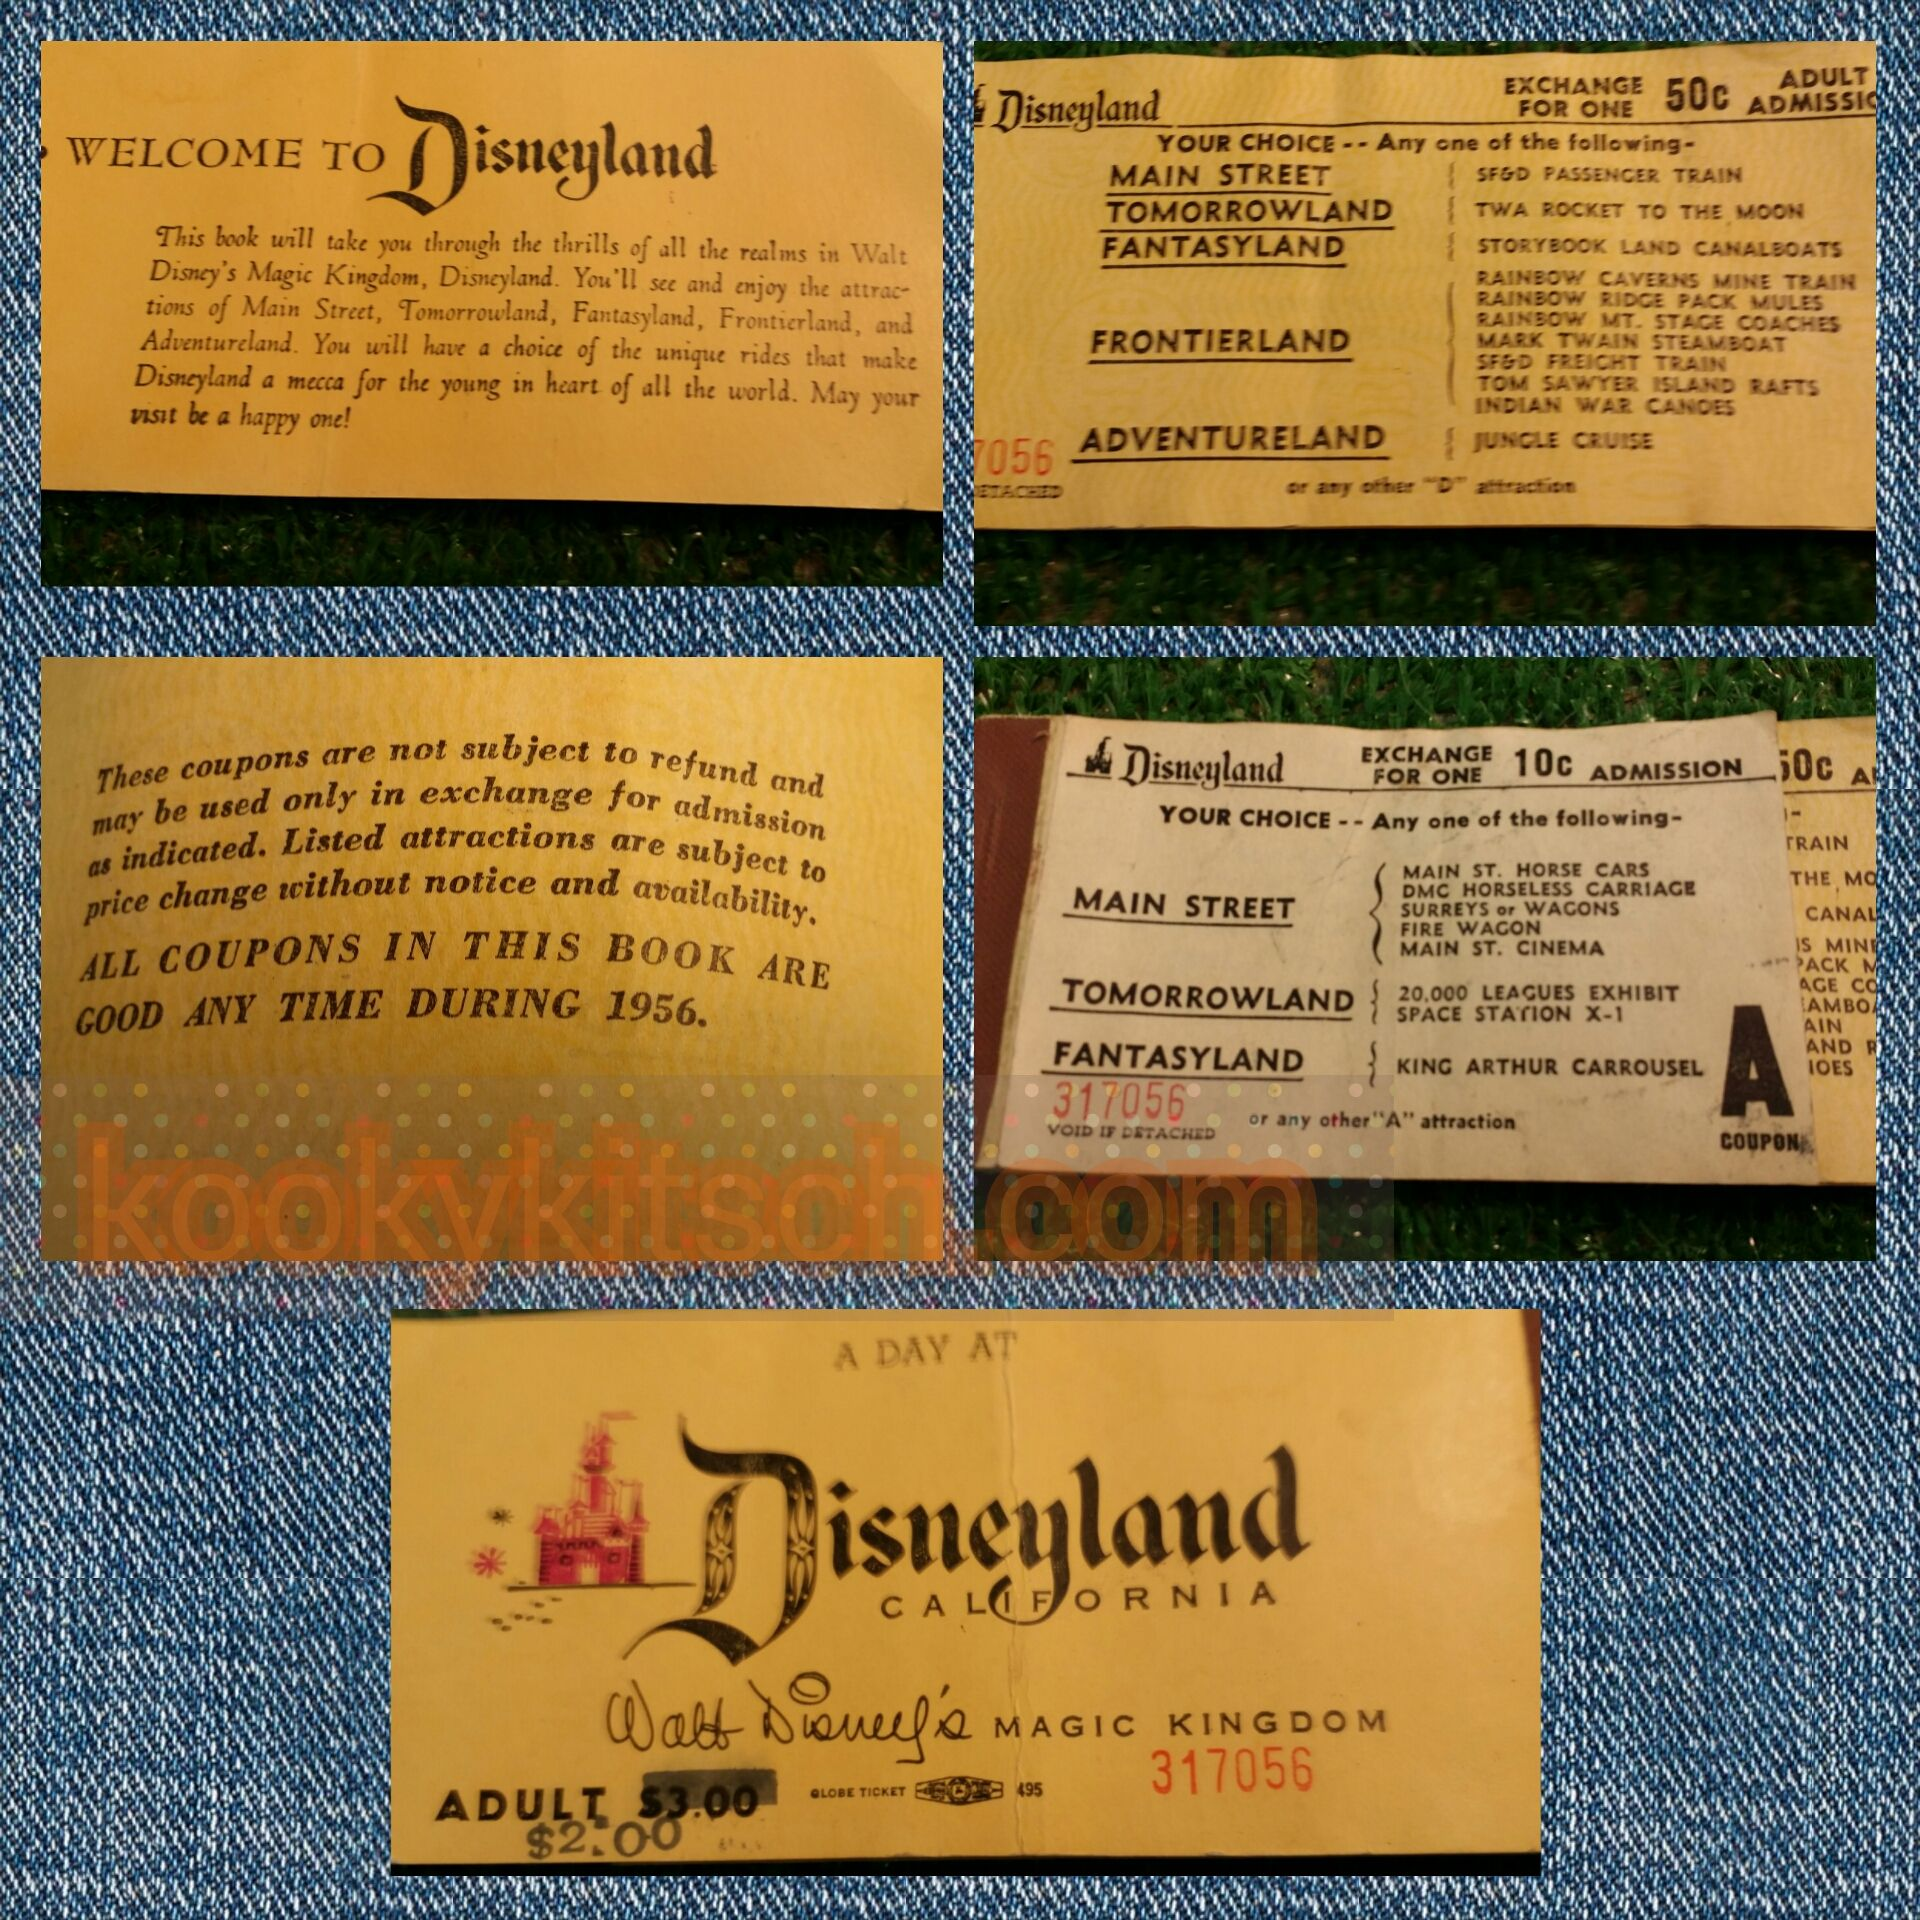 b8777f1e248d84c03b3599d129003637 - How Much Is A Ticket To Get Into Disneyland